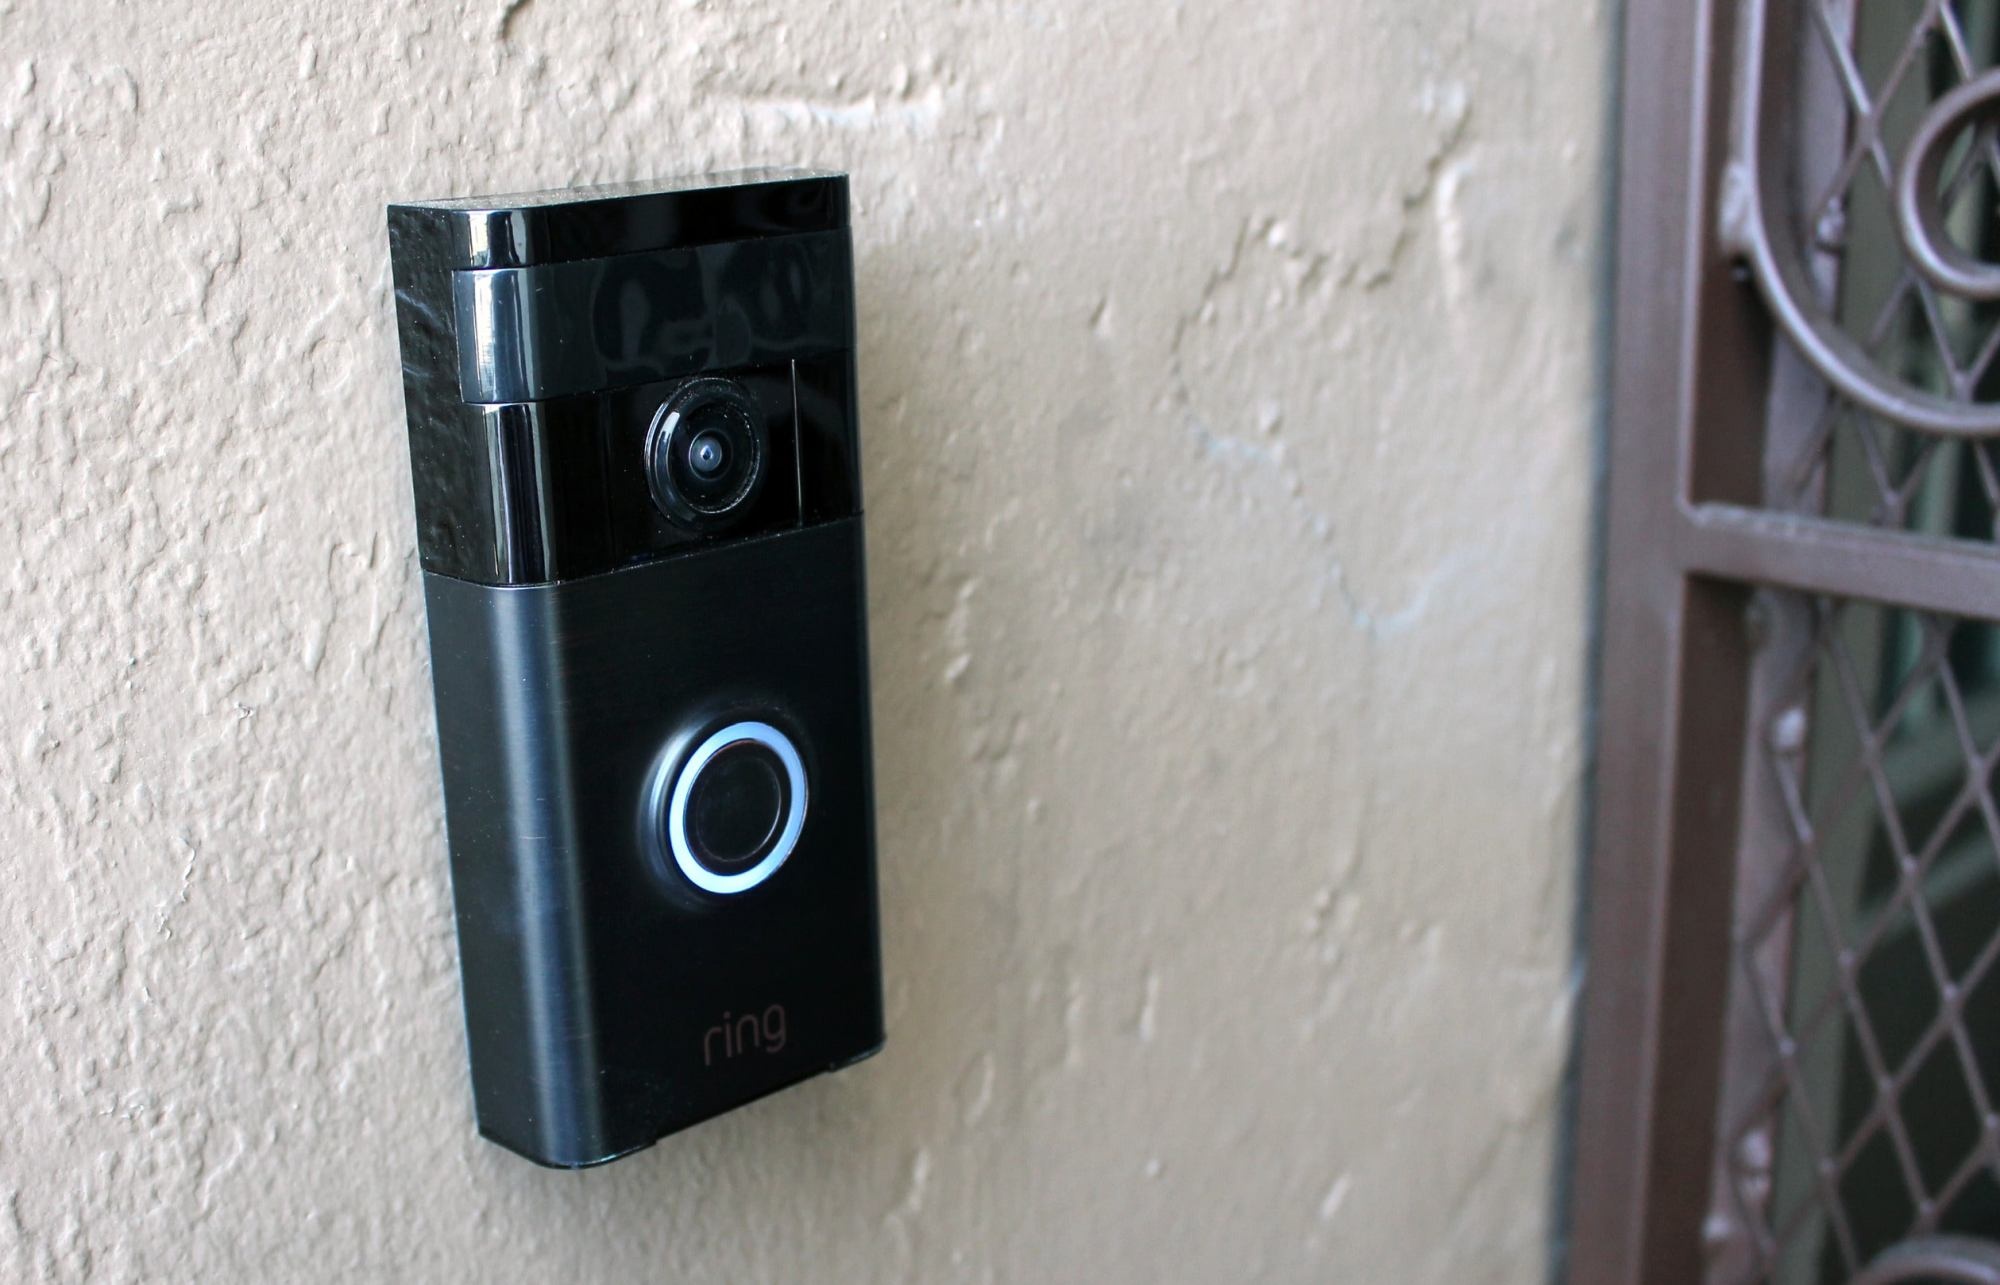 hight resolution of as soon as a visitor hits the button a blue light races around the circumference of the button and the doorbell emits a loud chime sound